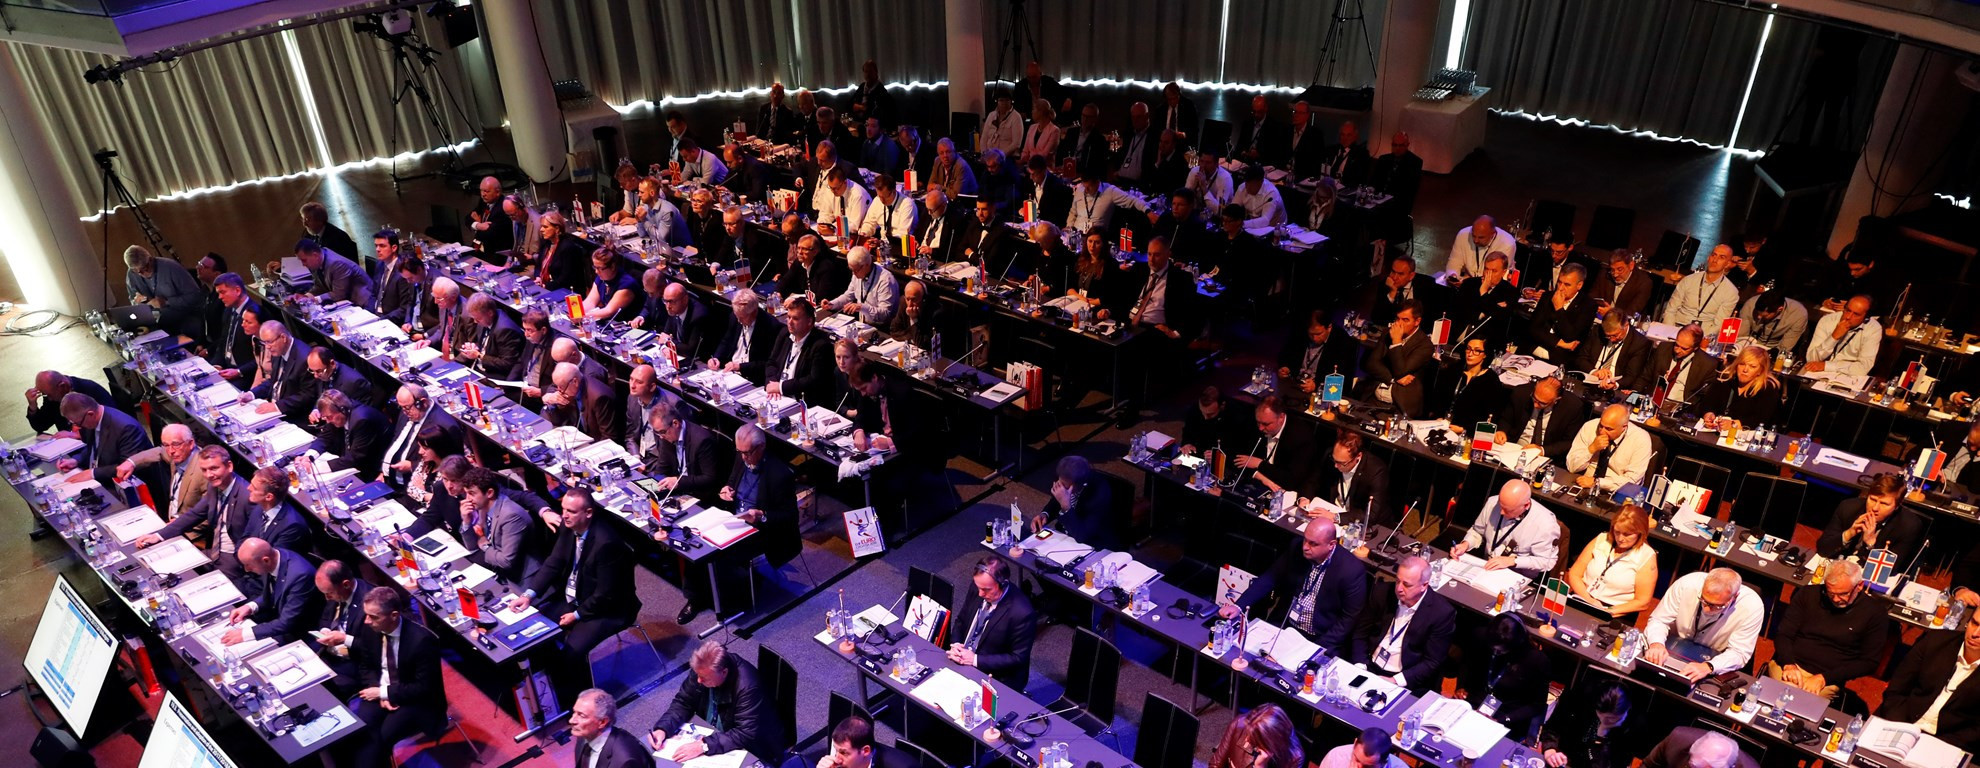 EHF receive 21 nominations for nine positions on Executive Committee